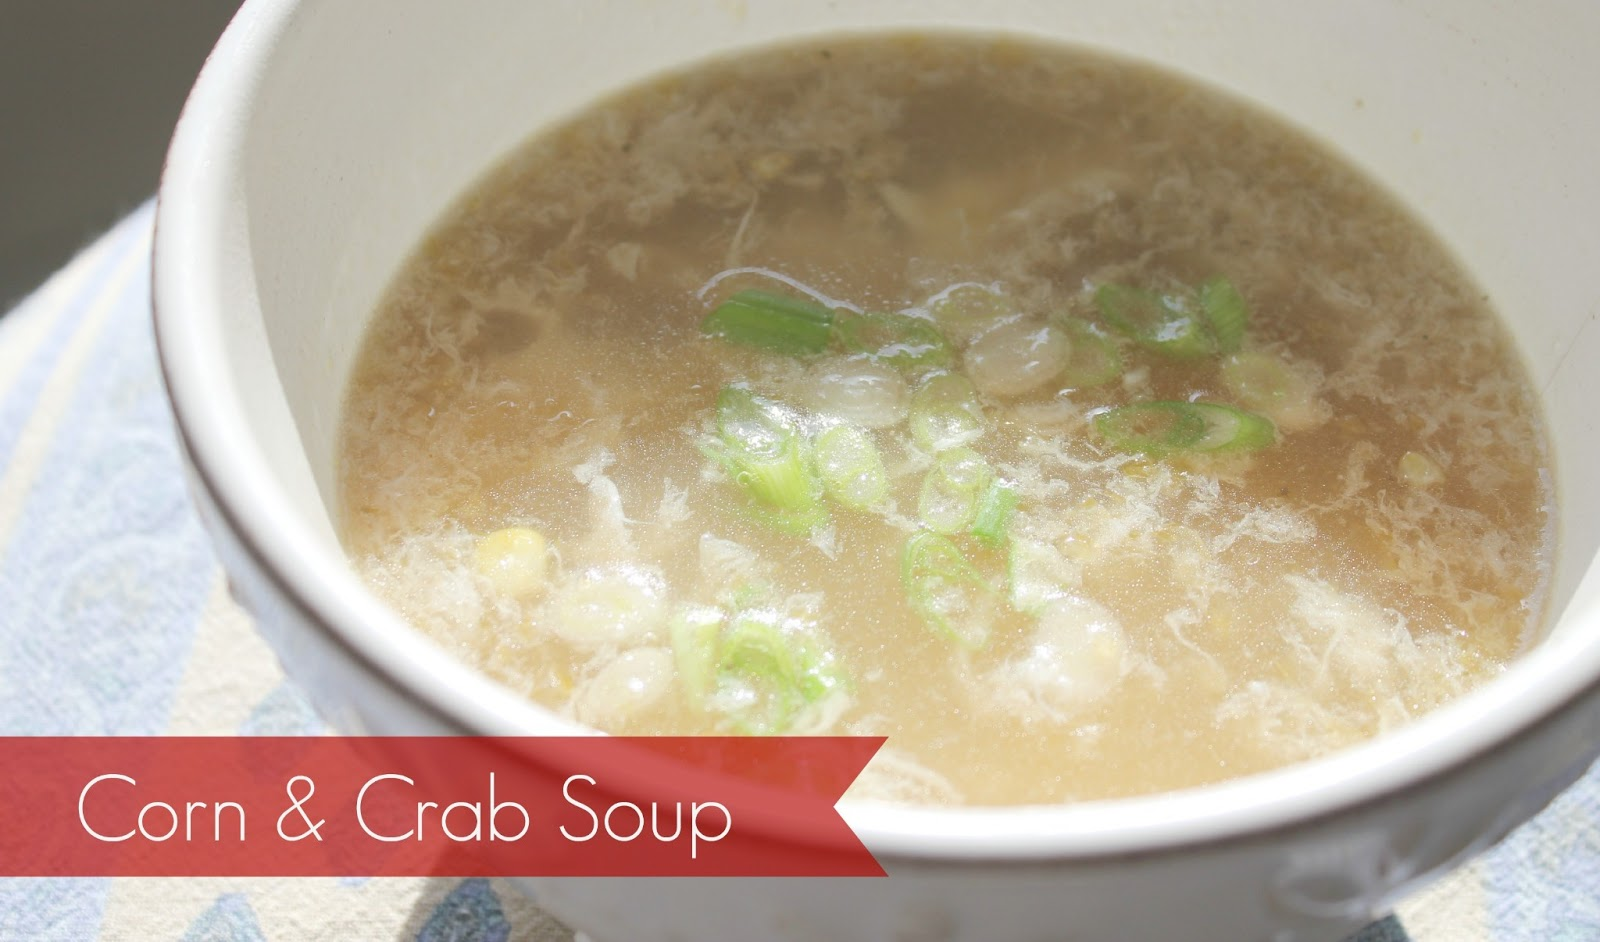 Recipe - Corn & Crab Soup